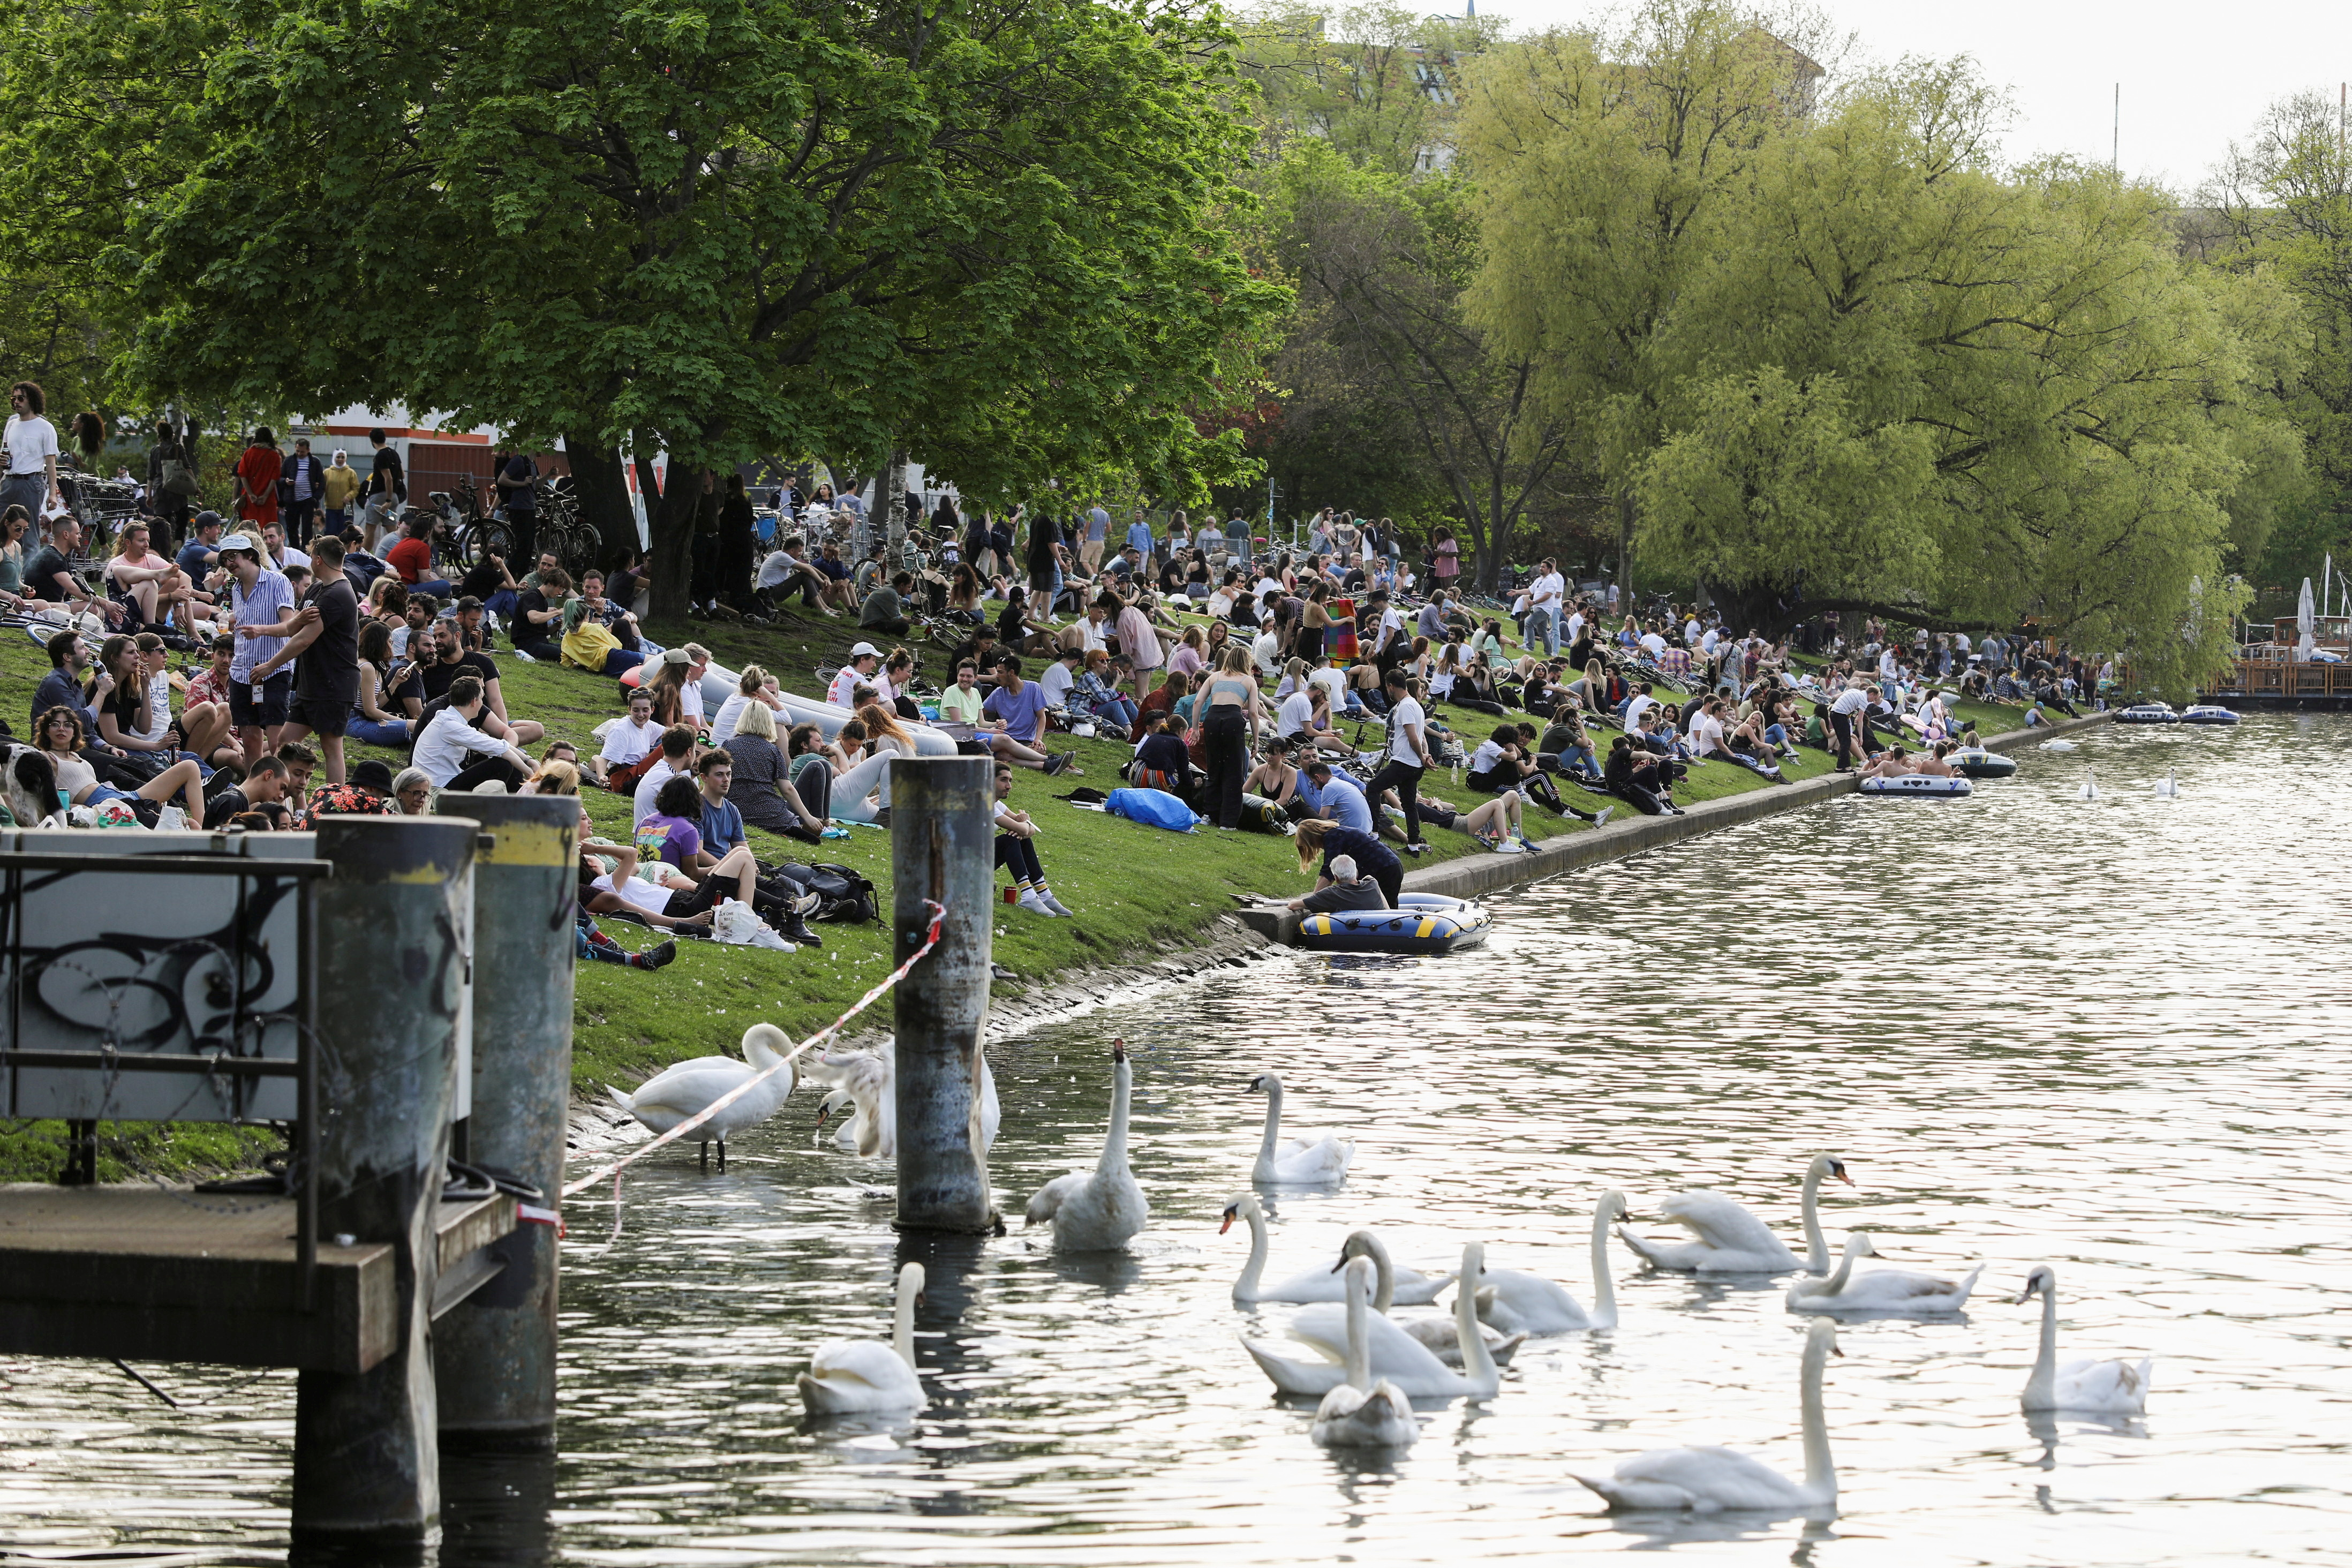 People enjoy the sunny weather on the bank of the Landwehrkanal, as the spread of the coronavirus disease (COVID-19) continues, in Berlin, Germany, May 9, 2021. REUTERS/Christian Mang/File Photo